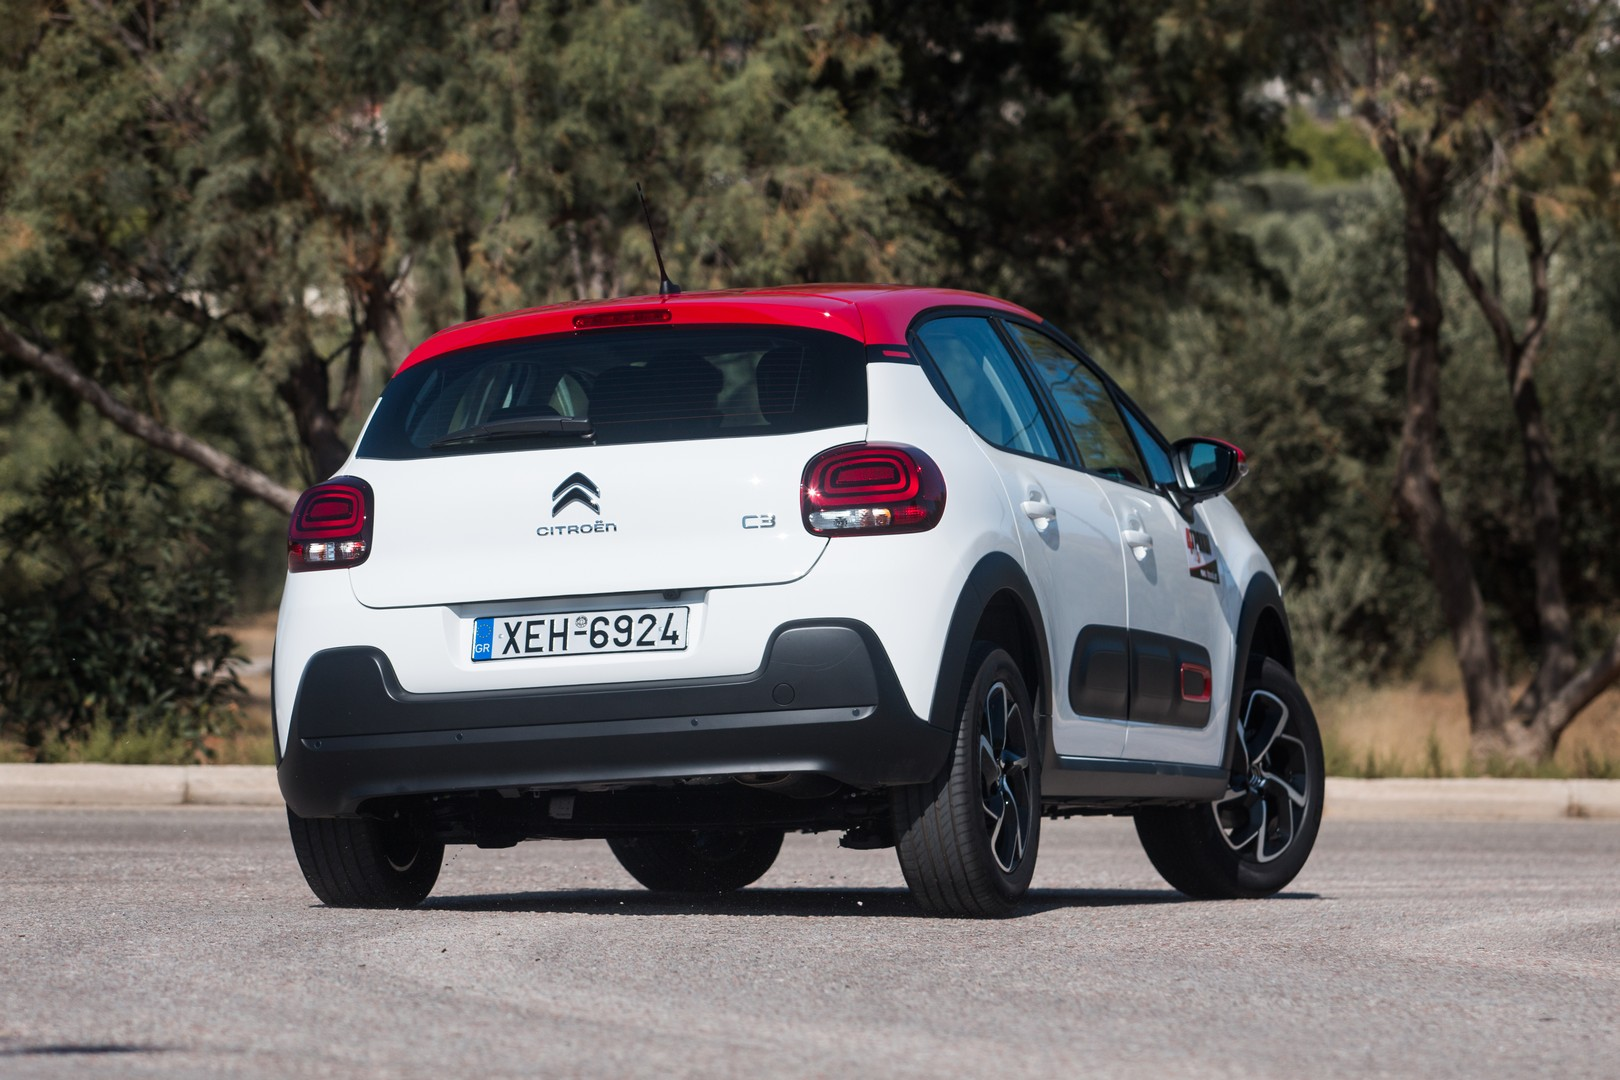 Citroen C3 1.2T 110 PS EAT6